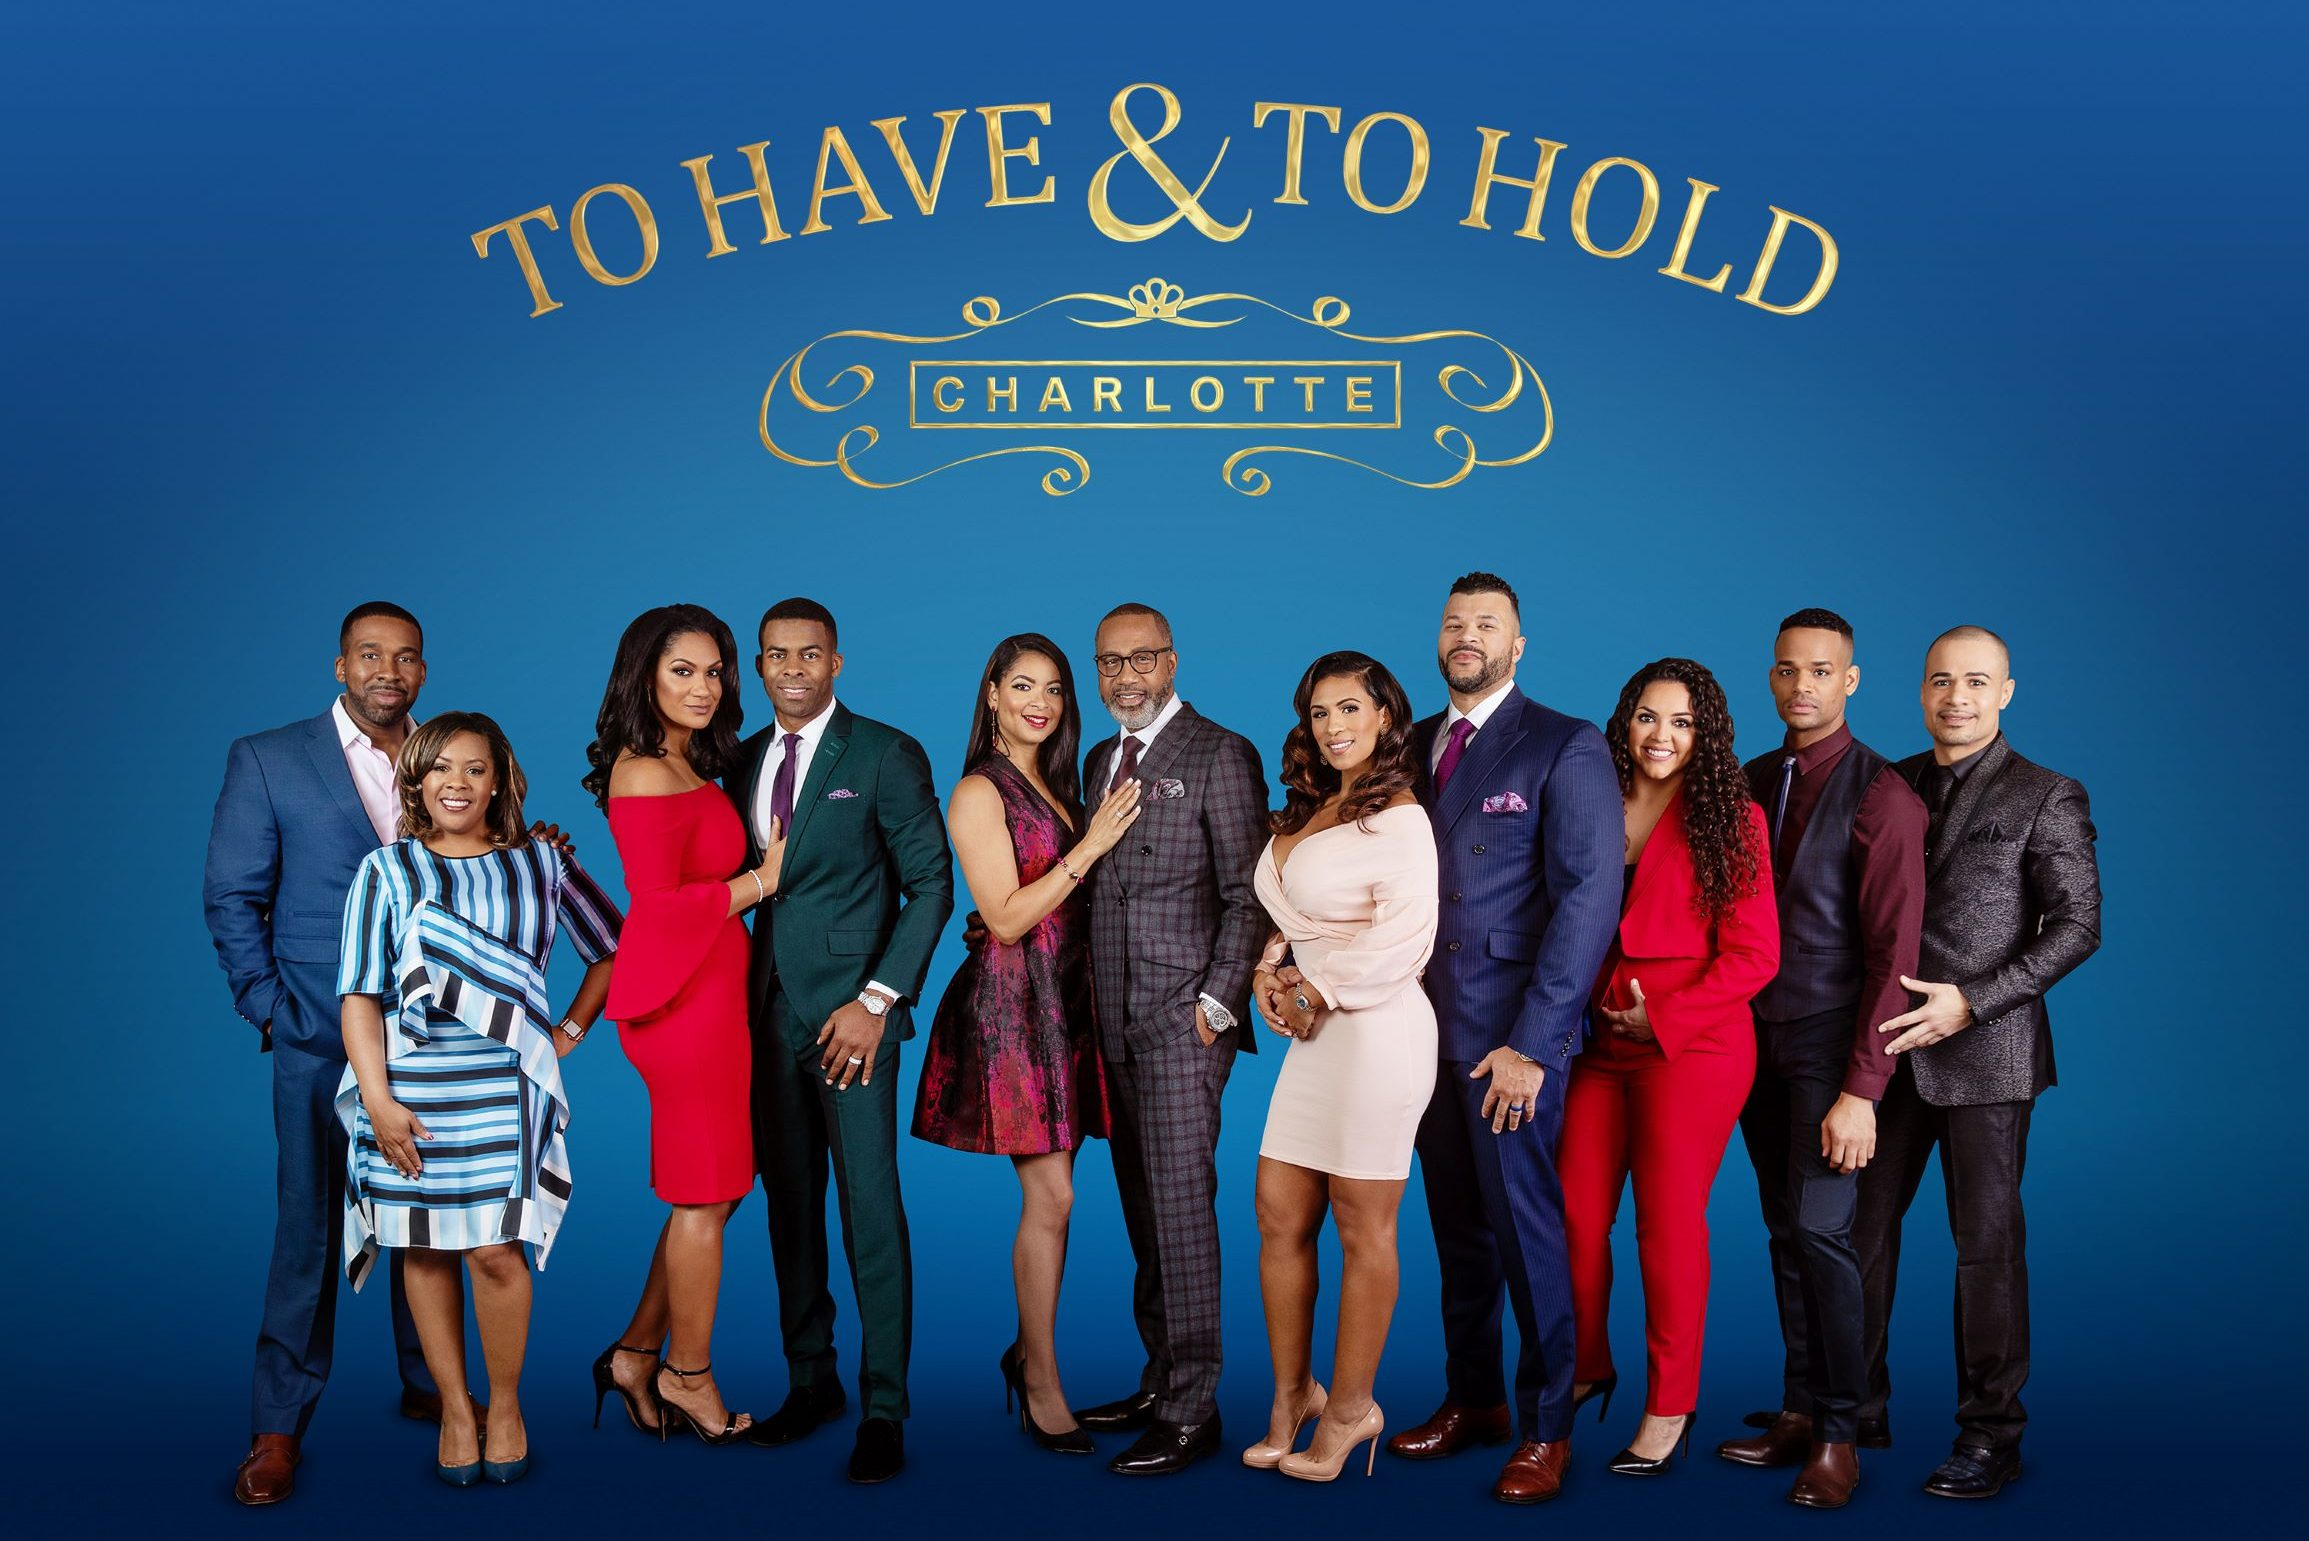 Charlotte-reality-TV-To-Have-To-Hold-cast